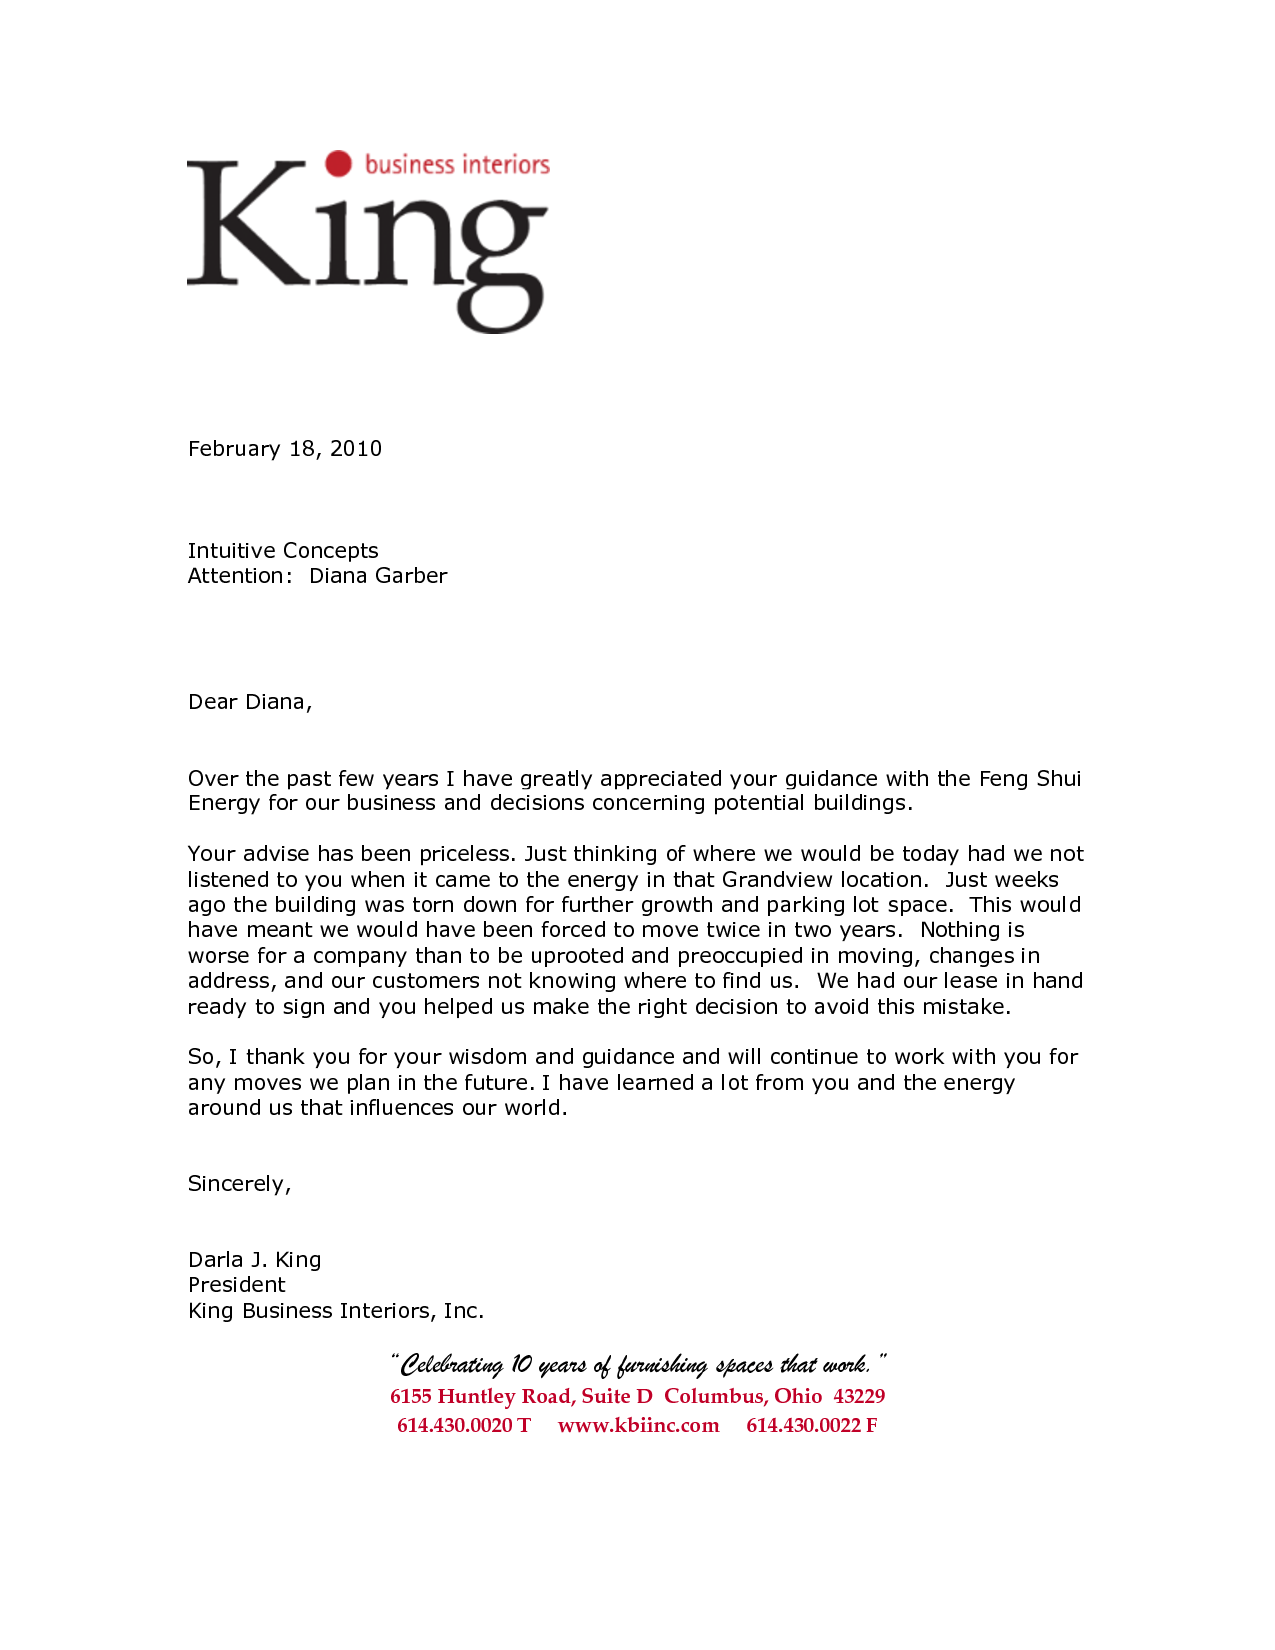 Business Letter of Reference Template King Business